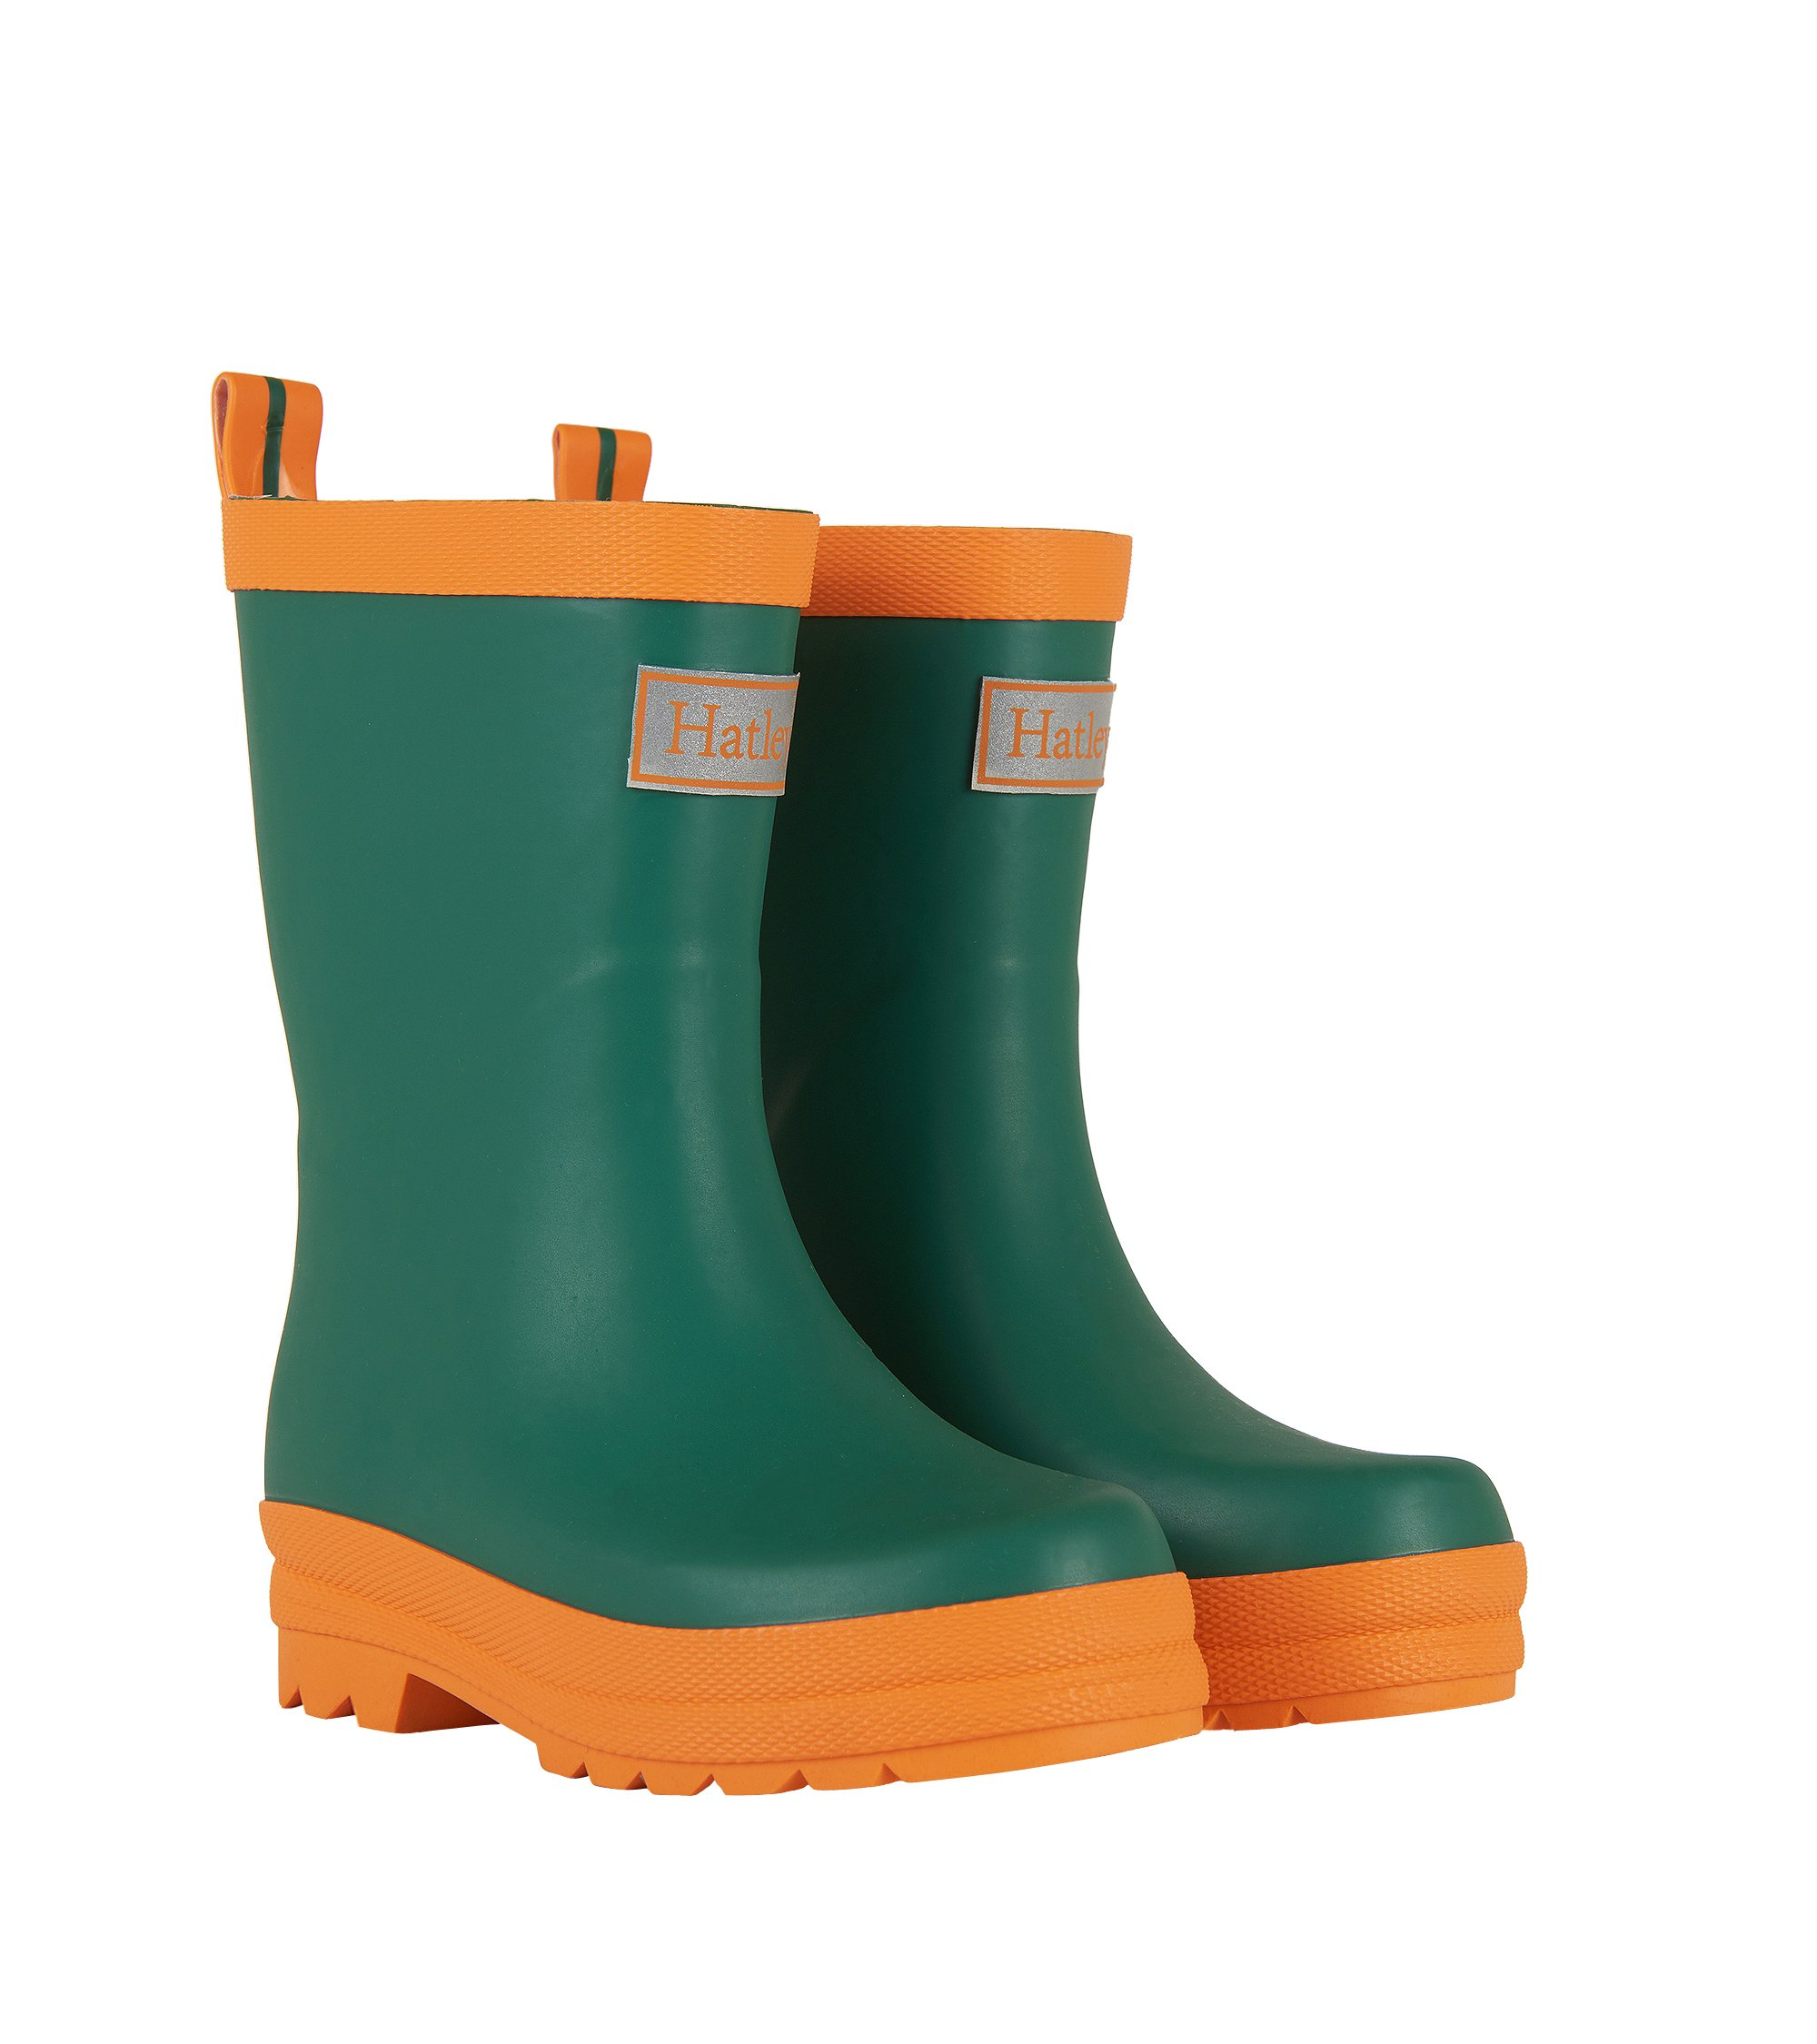 Hatley Kids' Classic Boots Rain Accessory, Green and Orange, 4 M US Toddler